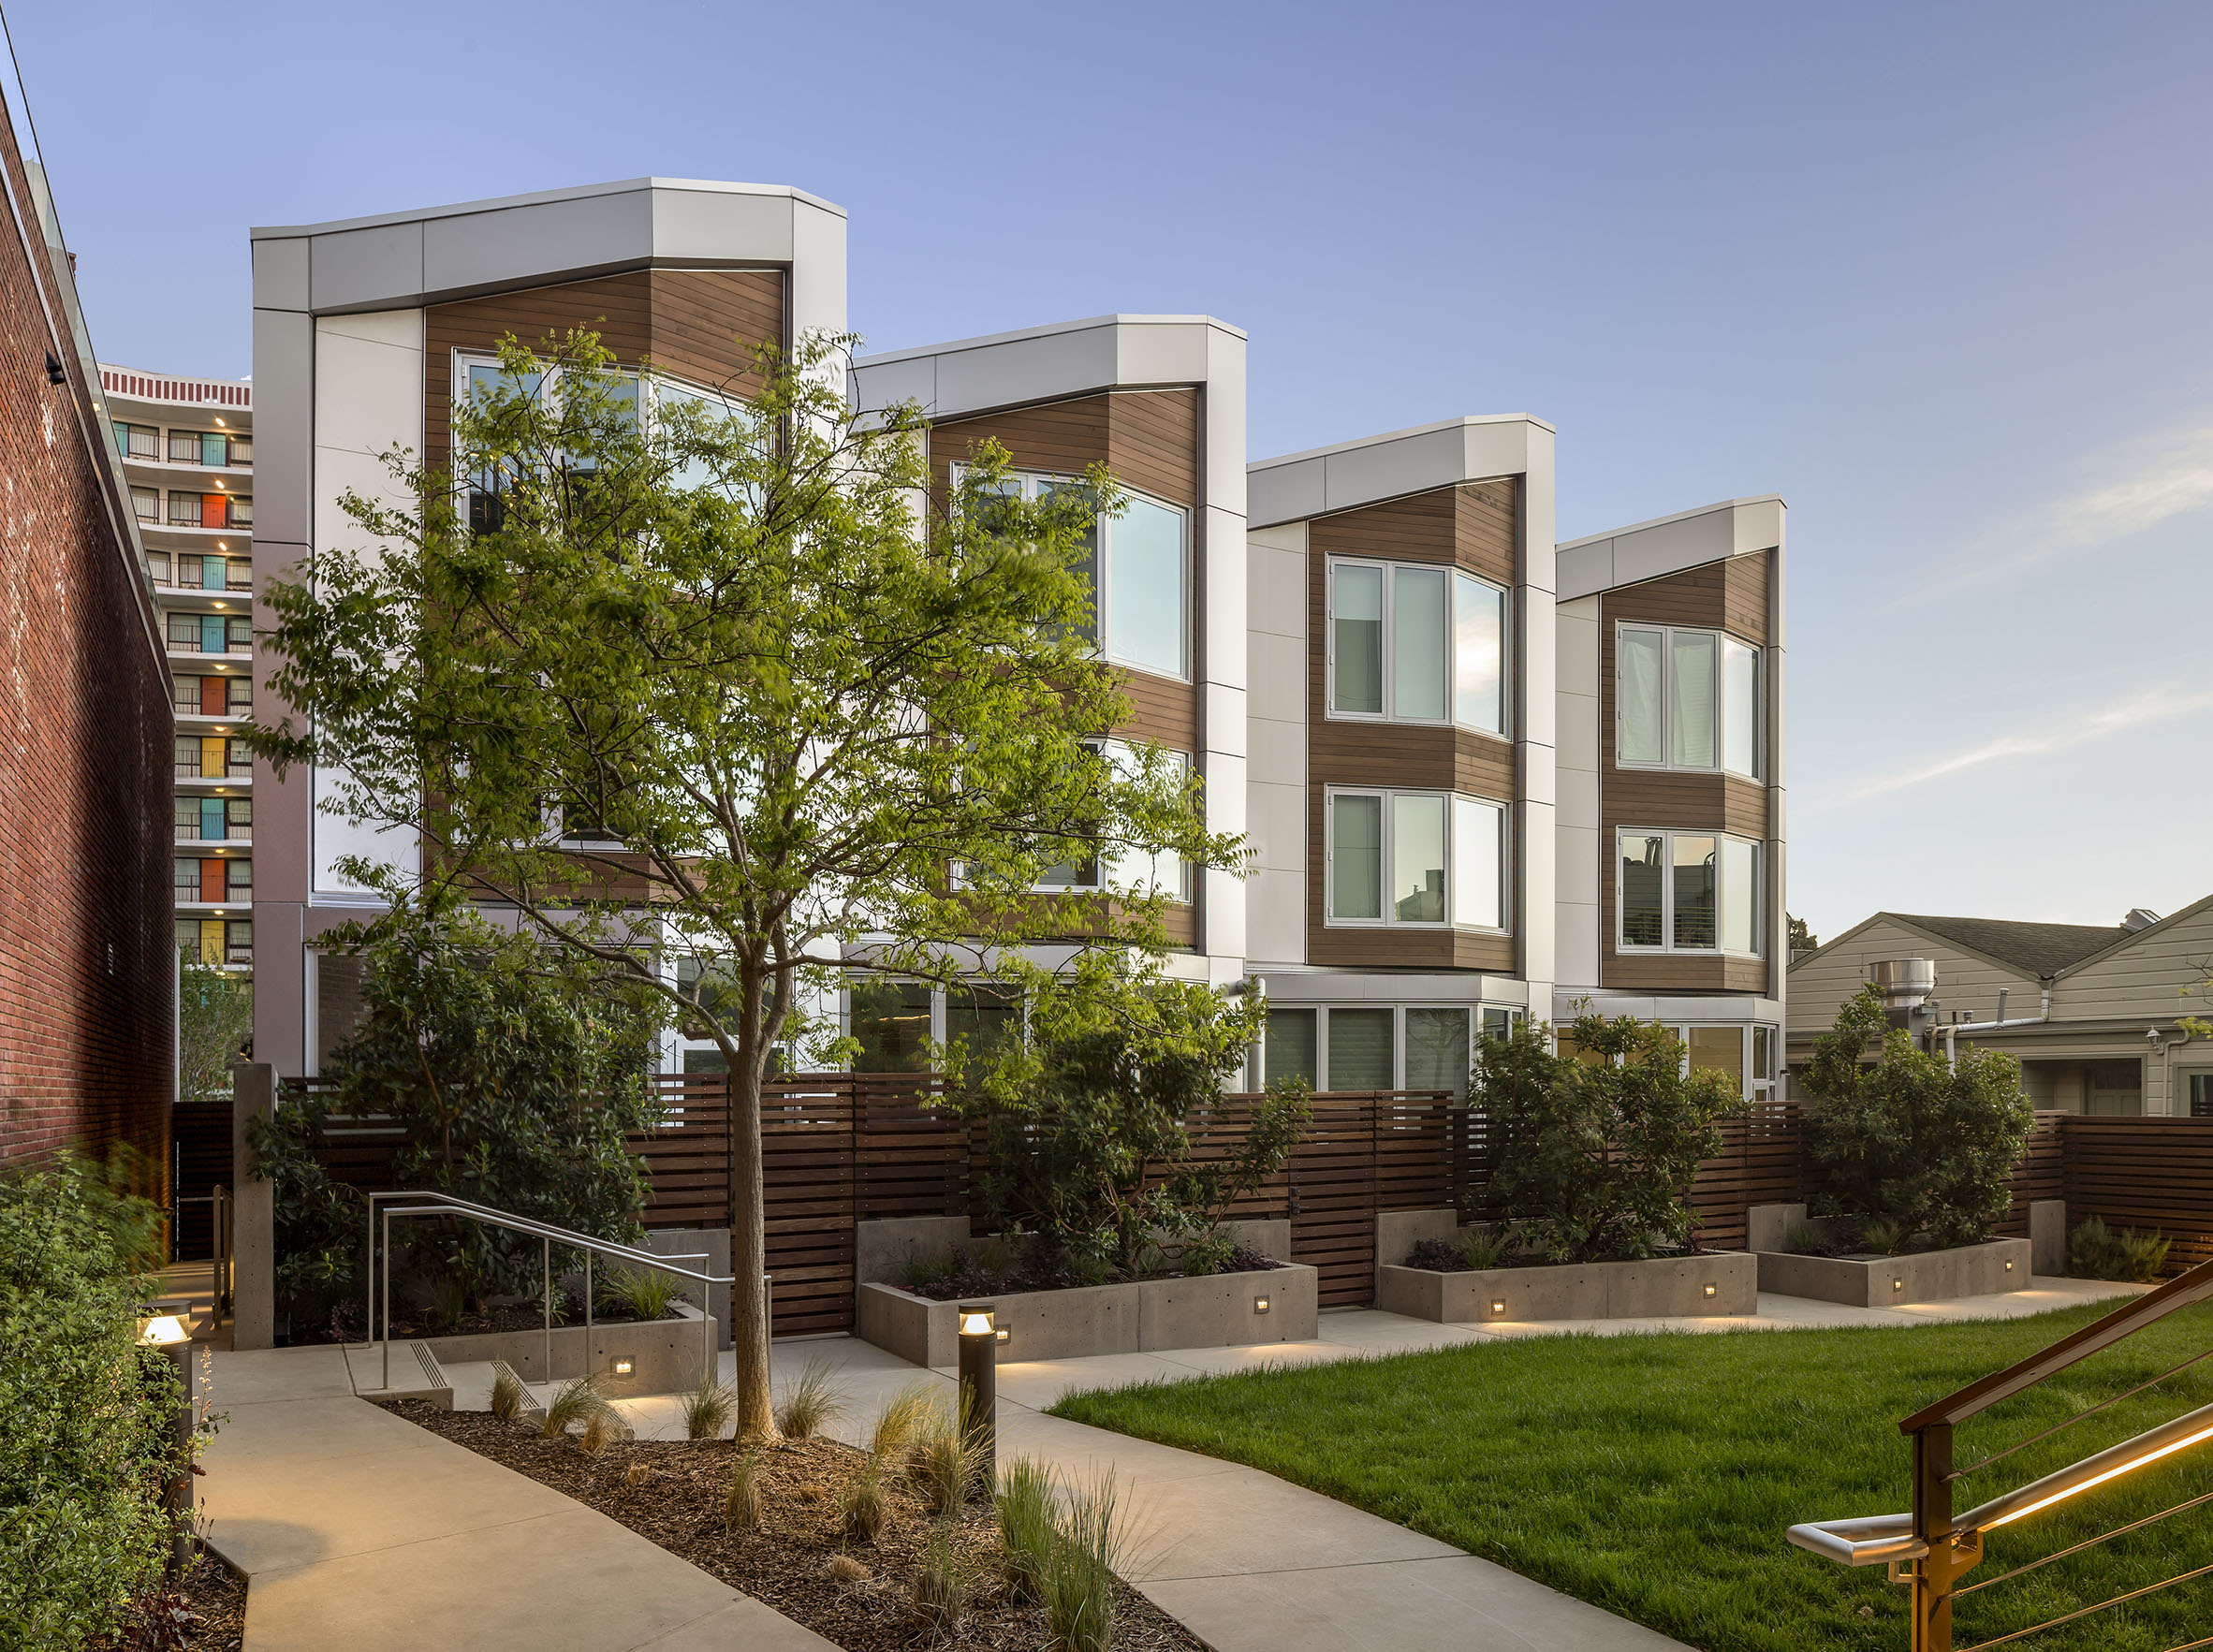 The Pacific Townhomes